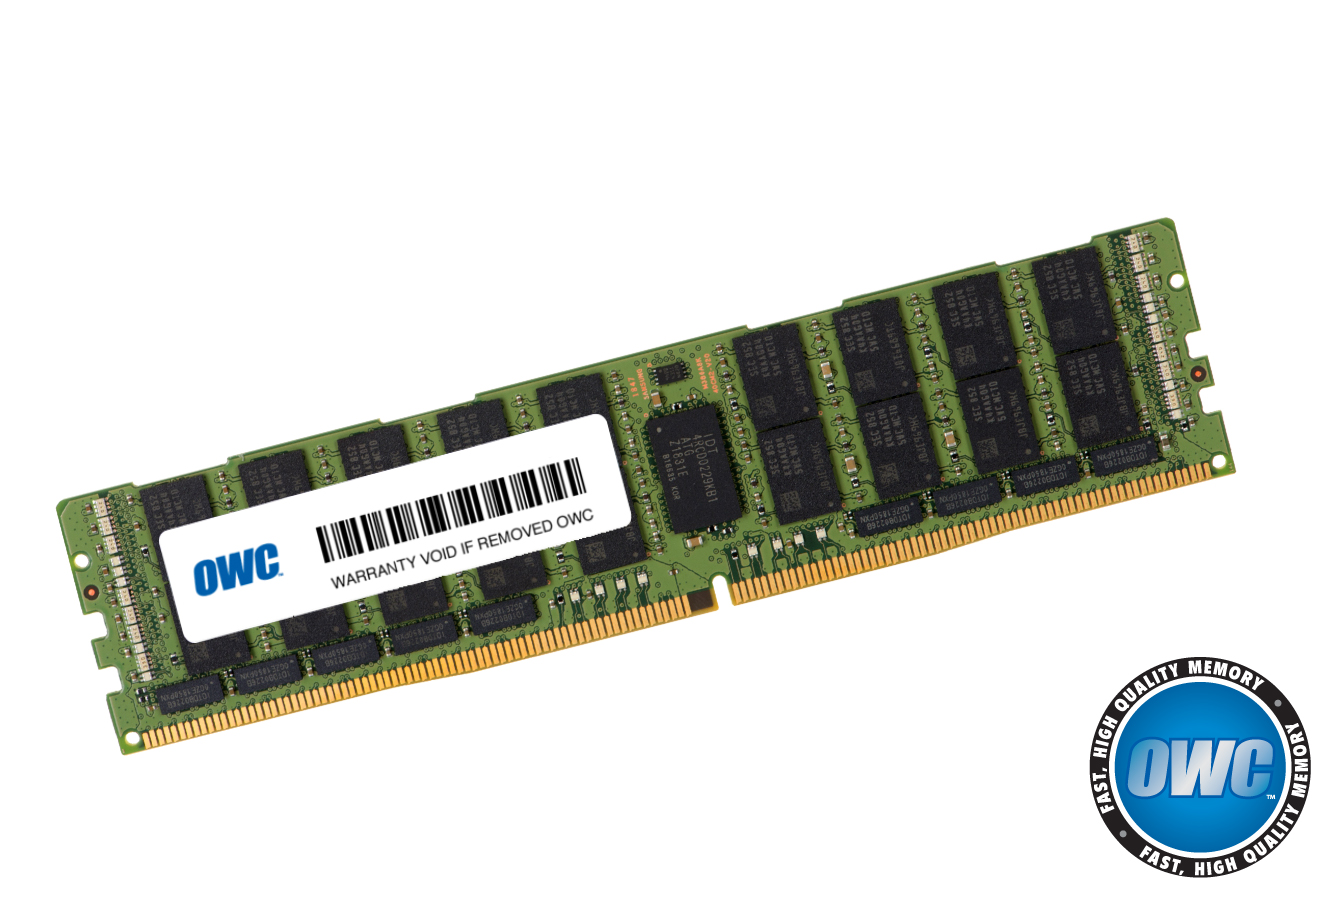 OWC Memory Upgrade 16GB PC21300 2666MHz DDR4 RDIMM for Mac Pro 8-Core models